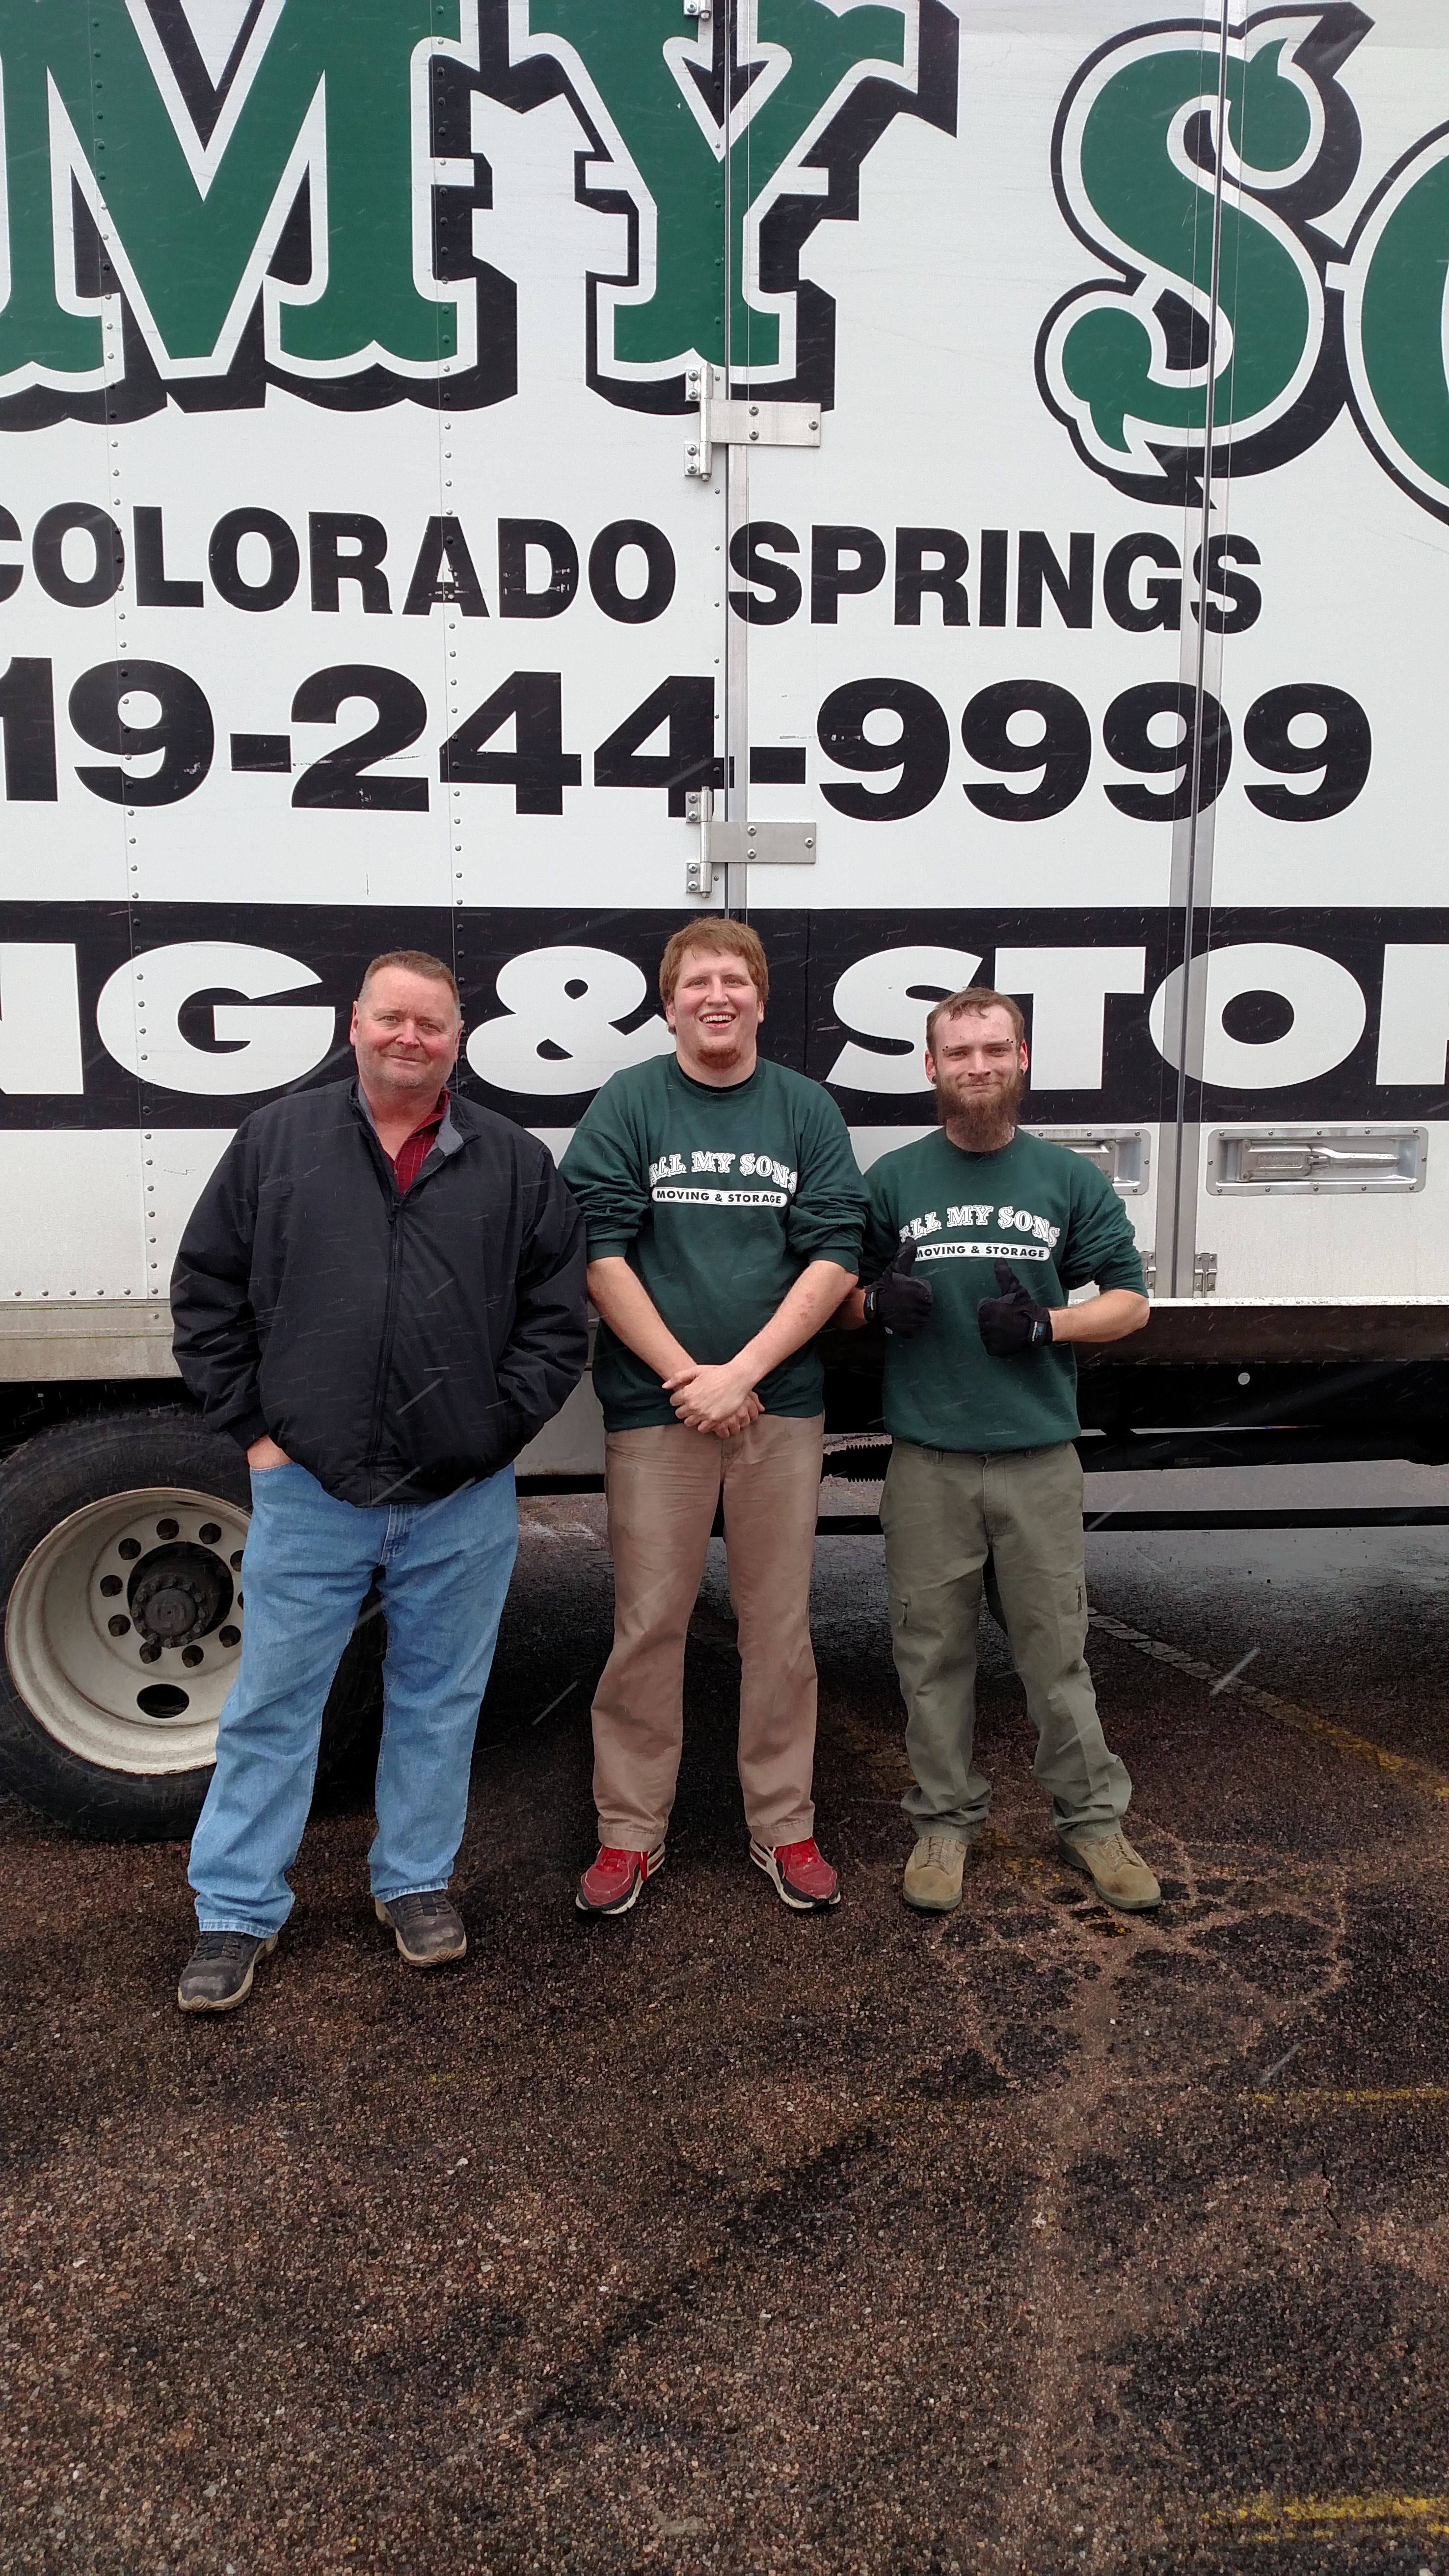 Customer Brian Huggins Of Colorado Springs Co Said All My Sons S